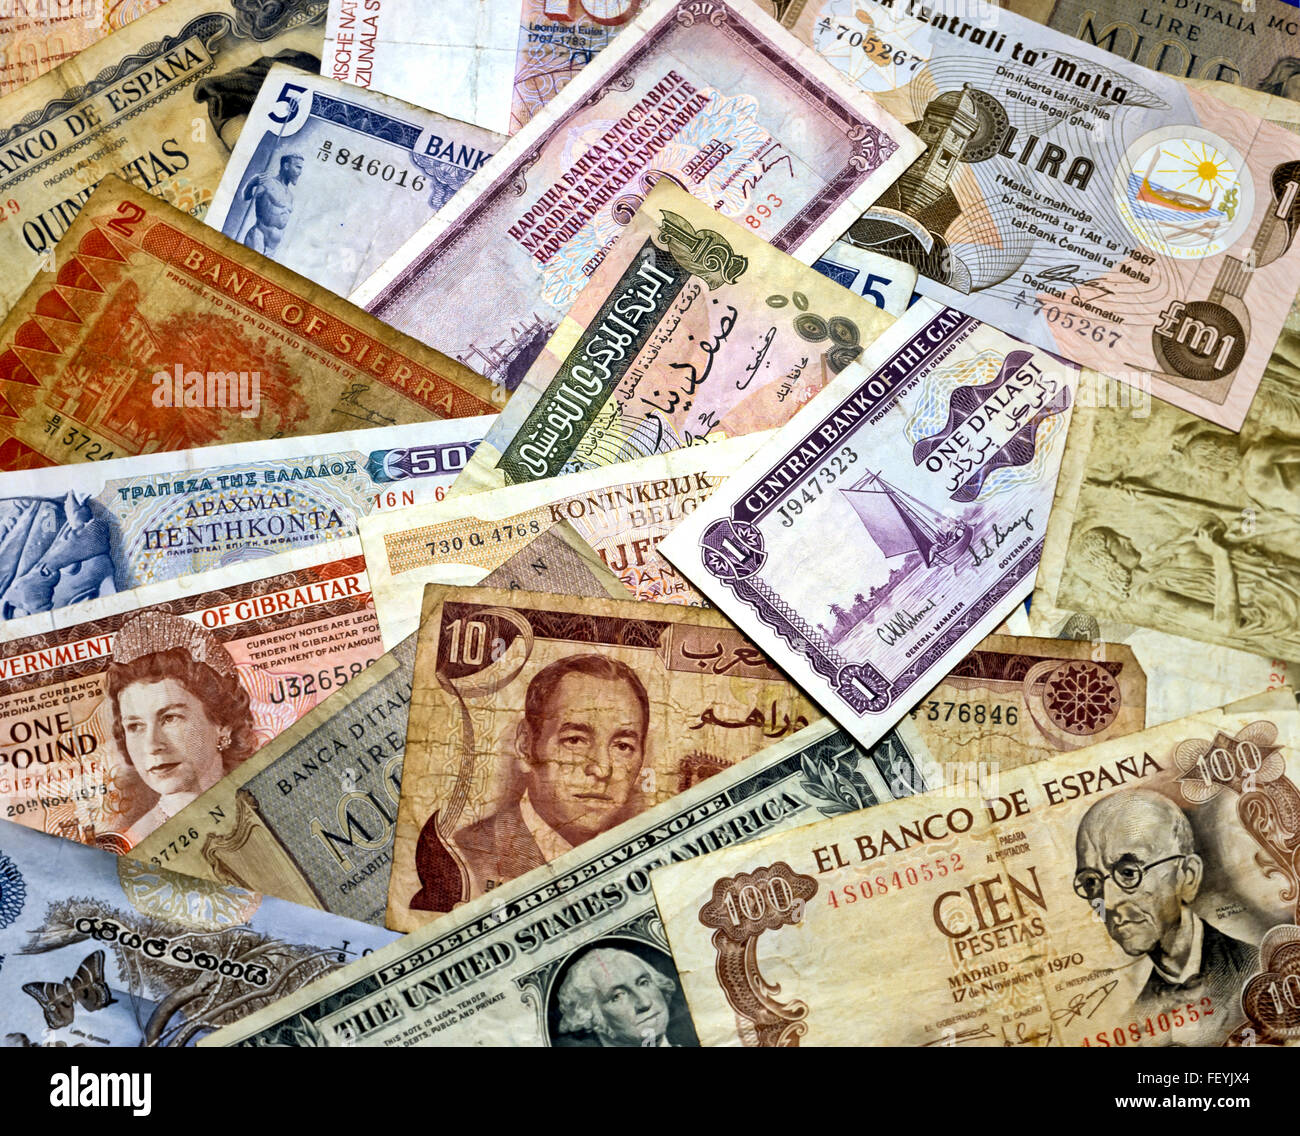 AA 6882. Archival 1990s International and Pre Euro Bank Notes - Stock Image